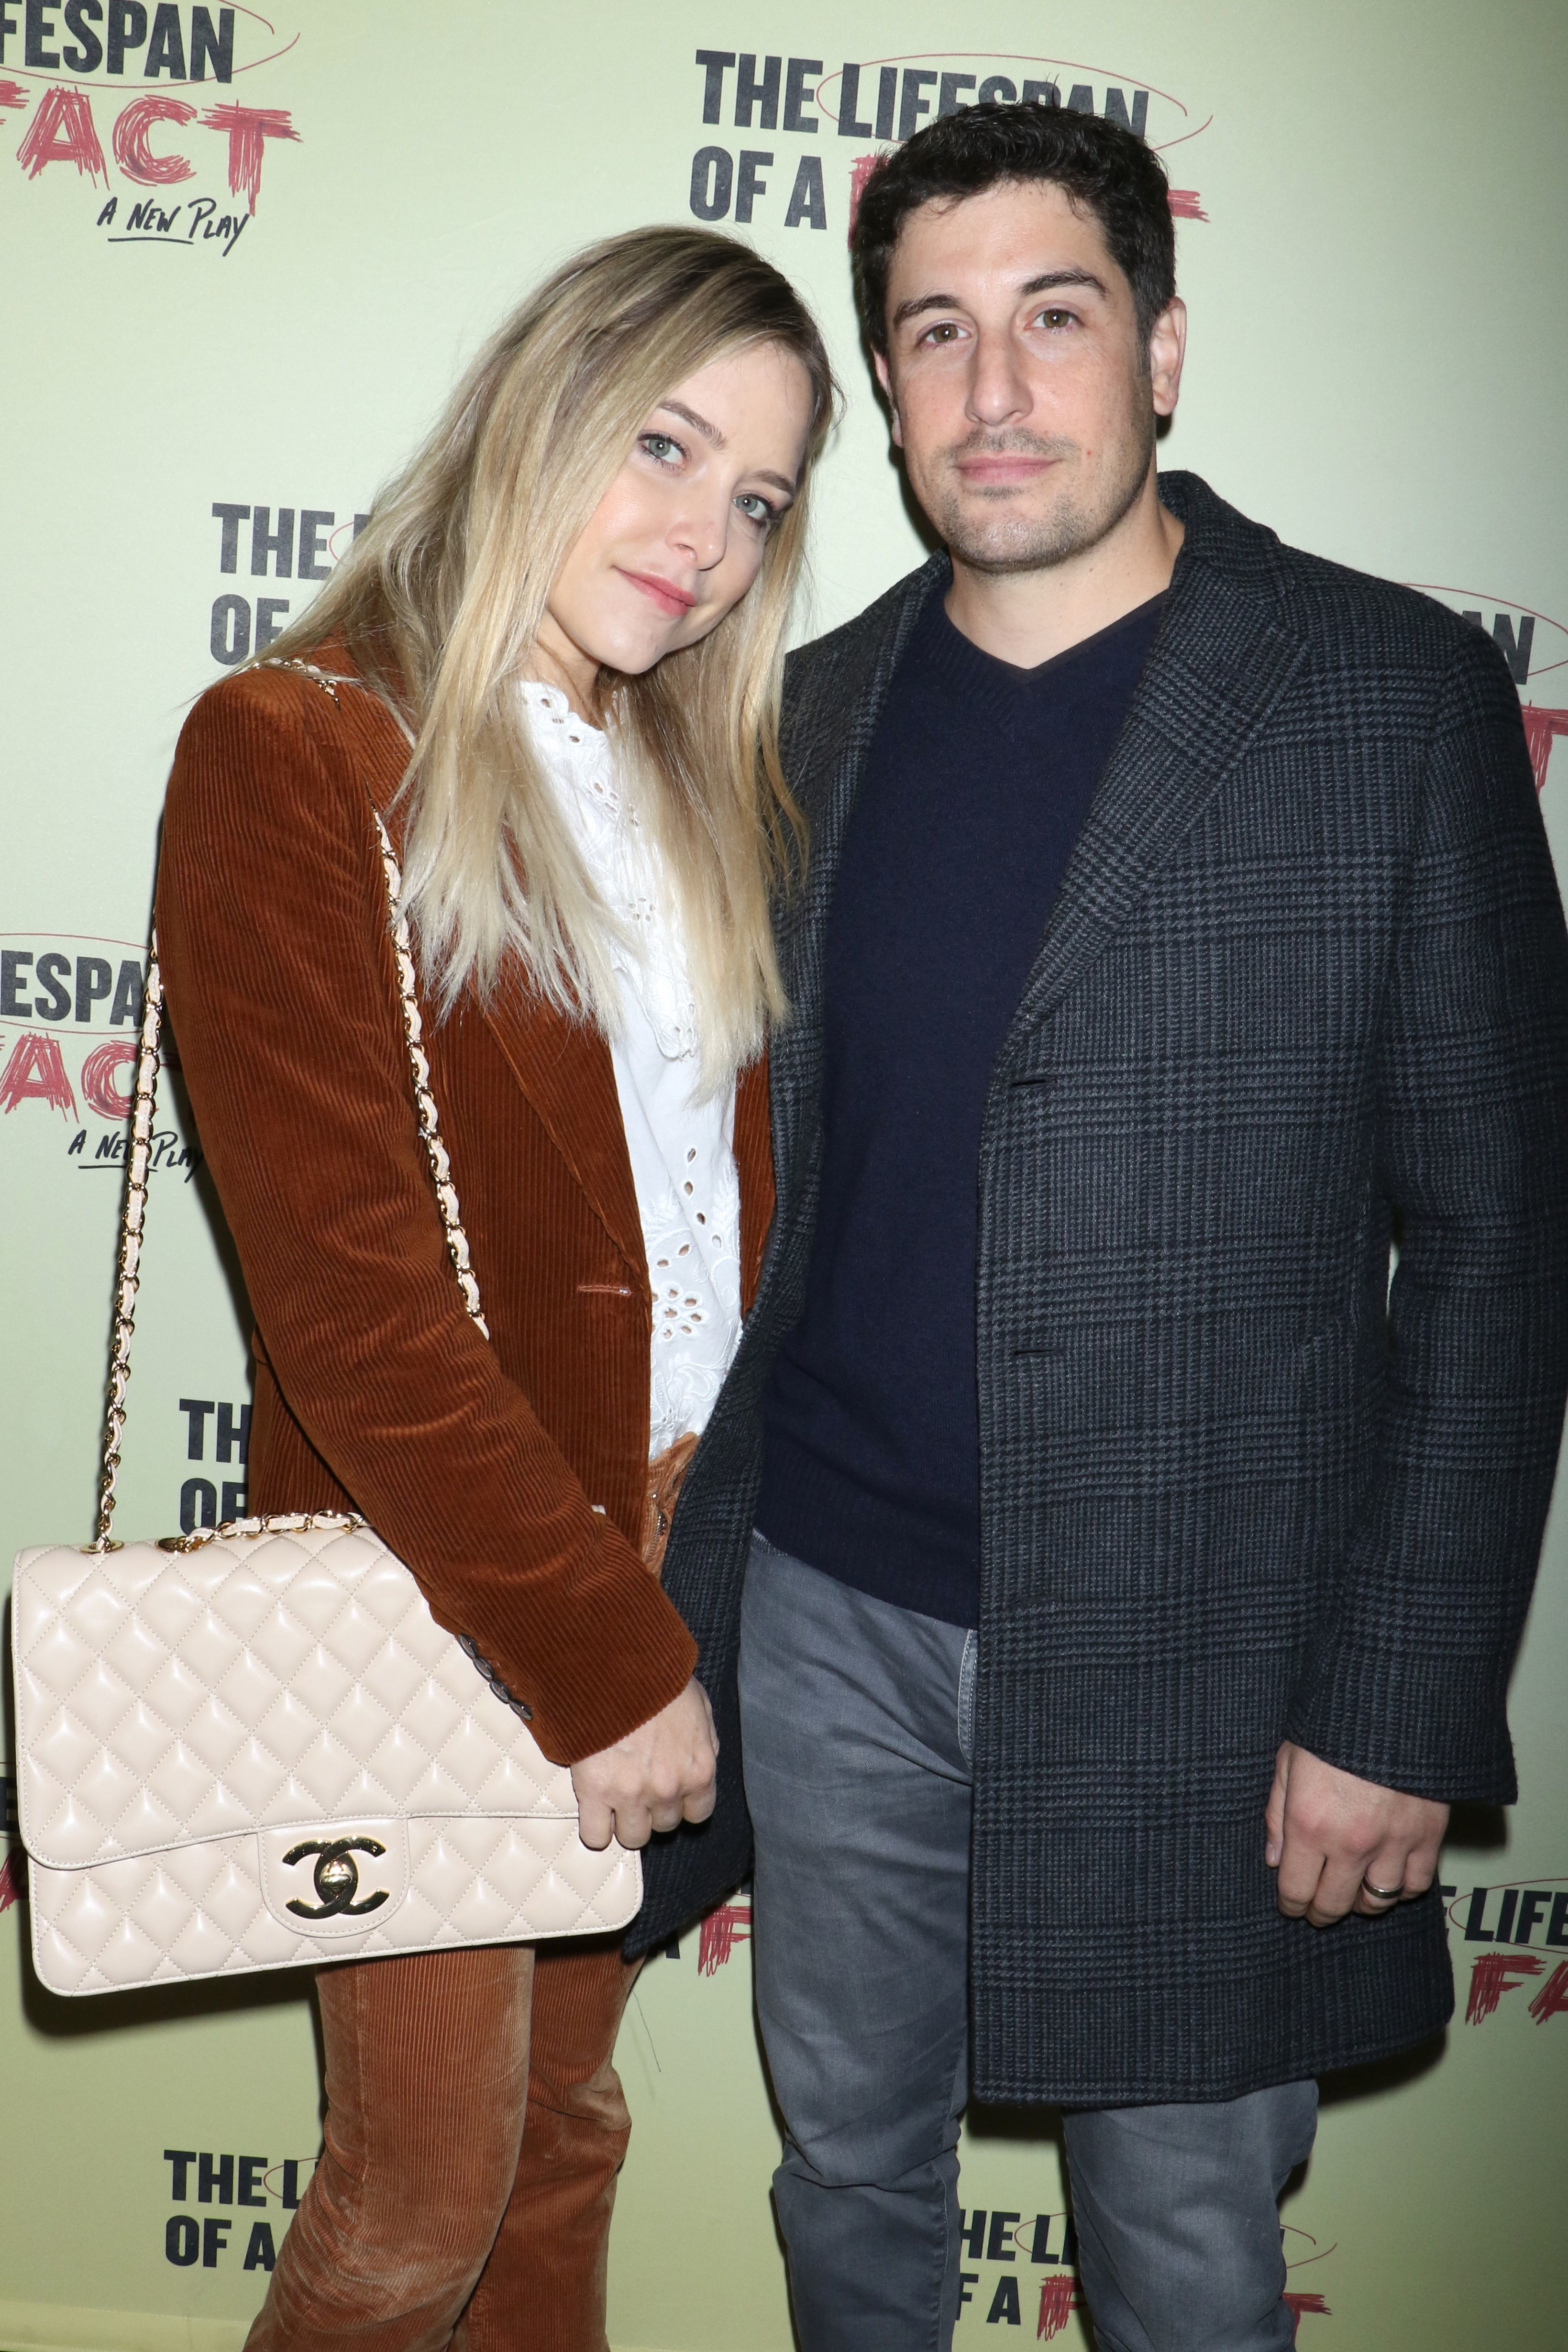 """Jenny Mollen and Jason Biggs attend the """"Lifespan of a Fact"""" Broadway play opening night in New York City on Oct. 18, 2018."""